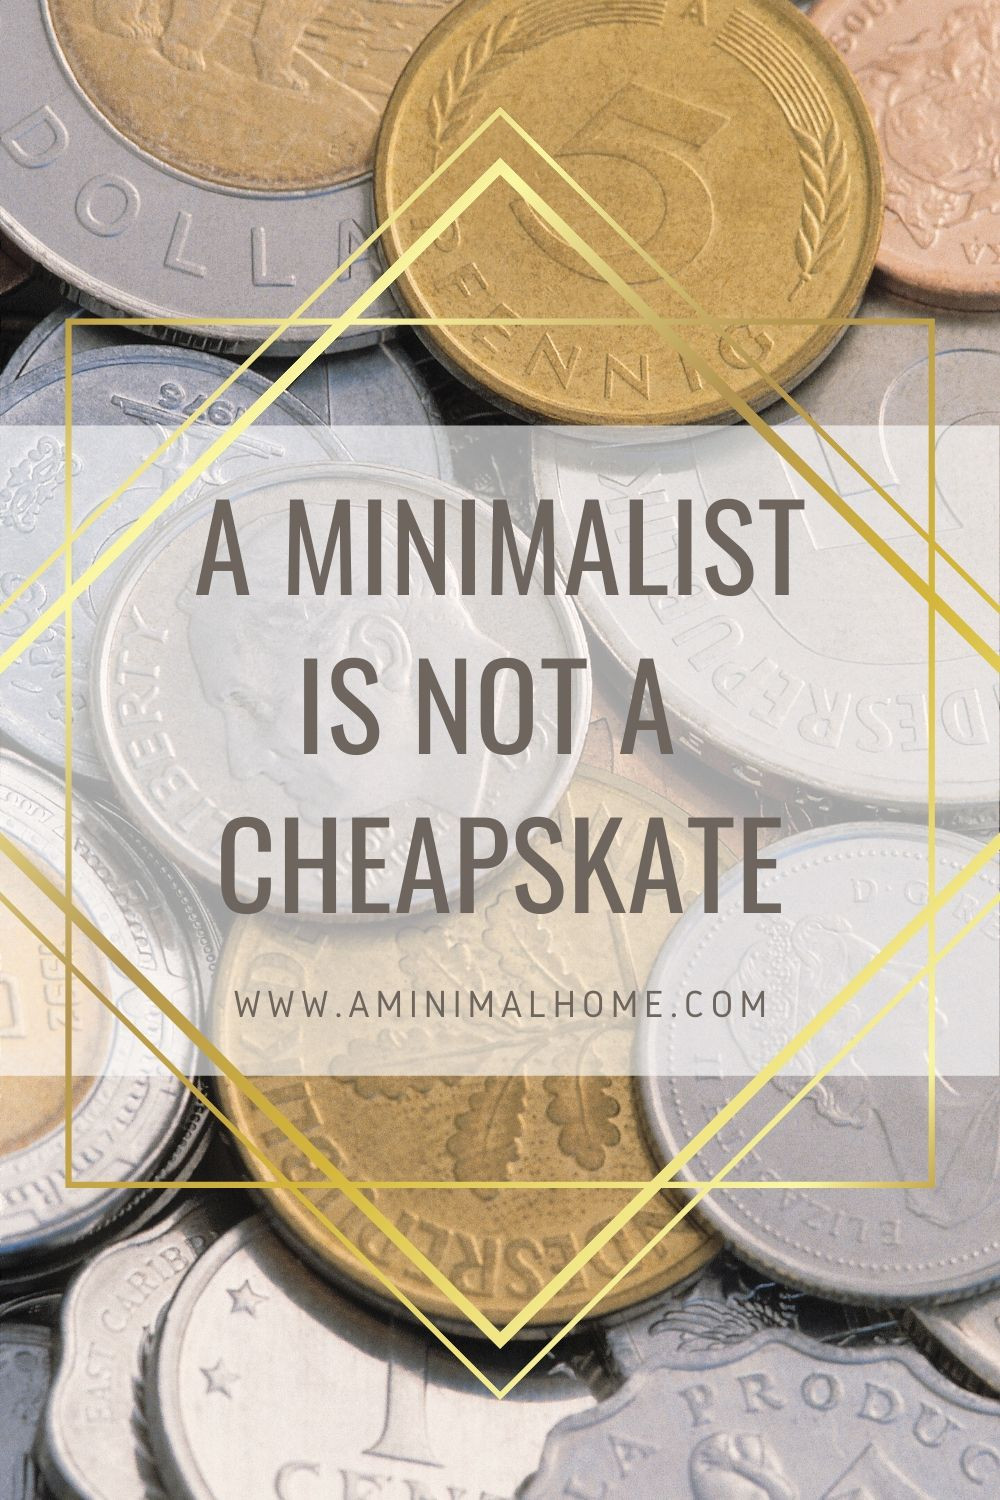 A minimalist is not a cheapskate